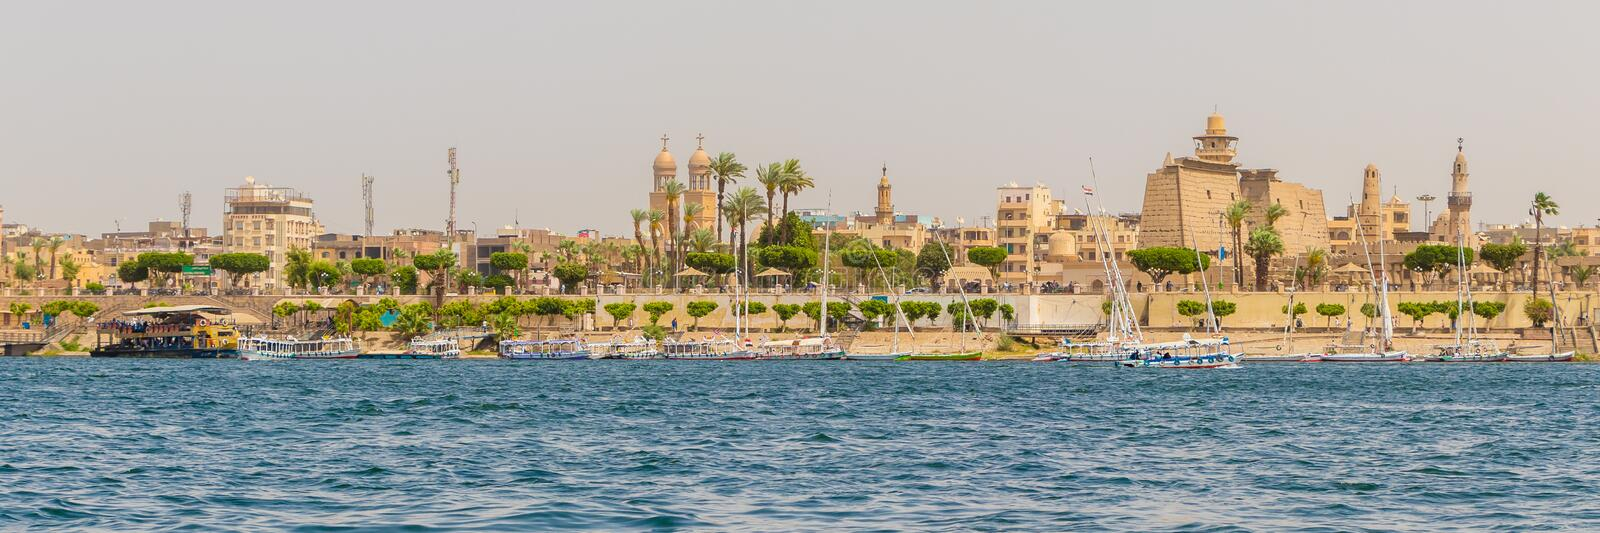 Karnak temple and the Muslim mosque on the banks of the river Nile in Luxor, Egypt. Luxor, Egypt - April 16, 2019: Karnak temple and the Muslim mosque on the royalty free stock image